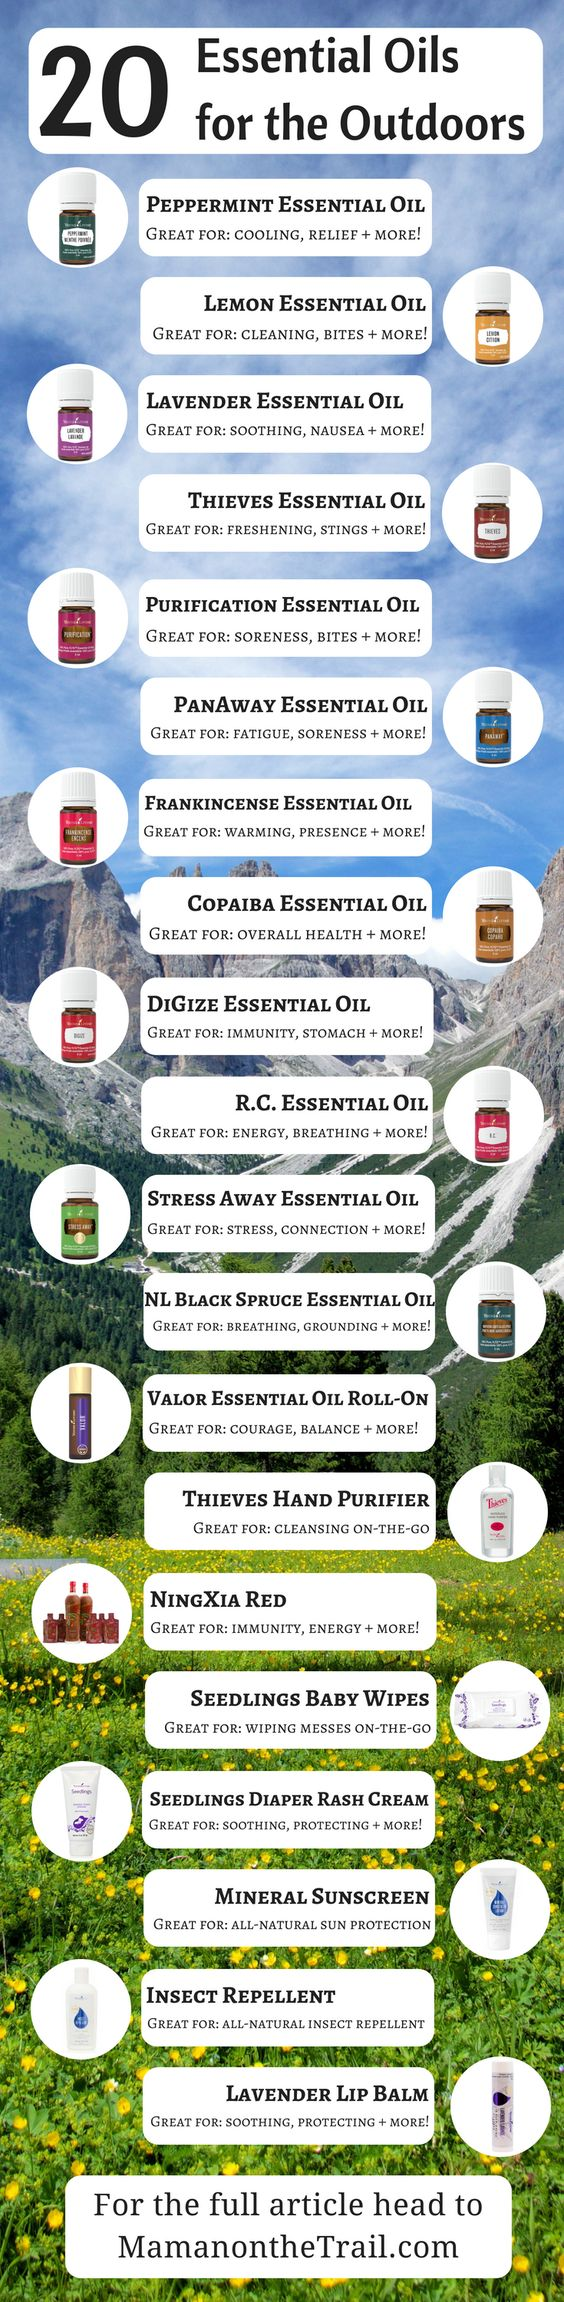 20 Essential Oils for the Outdoors – Young Living Essential Oils – Pinterest image